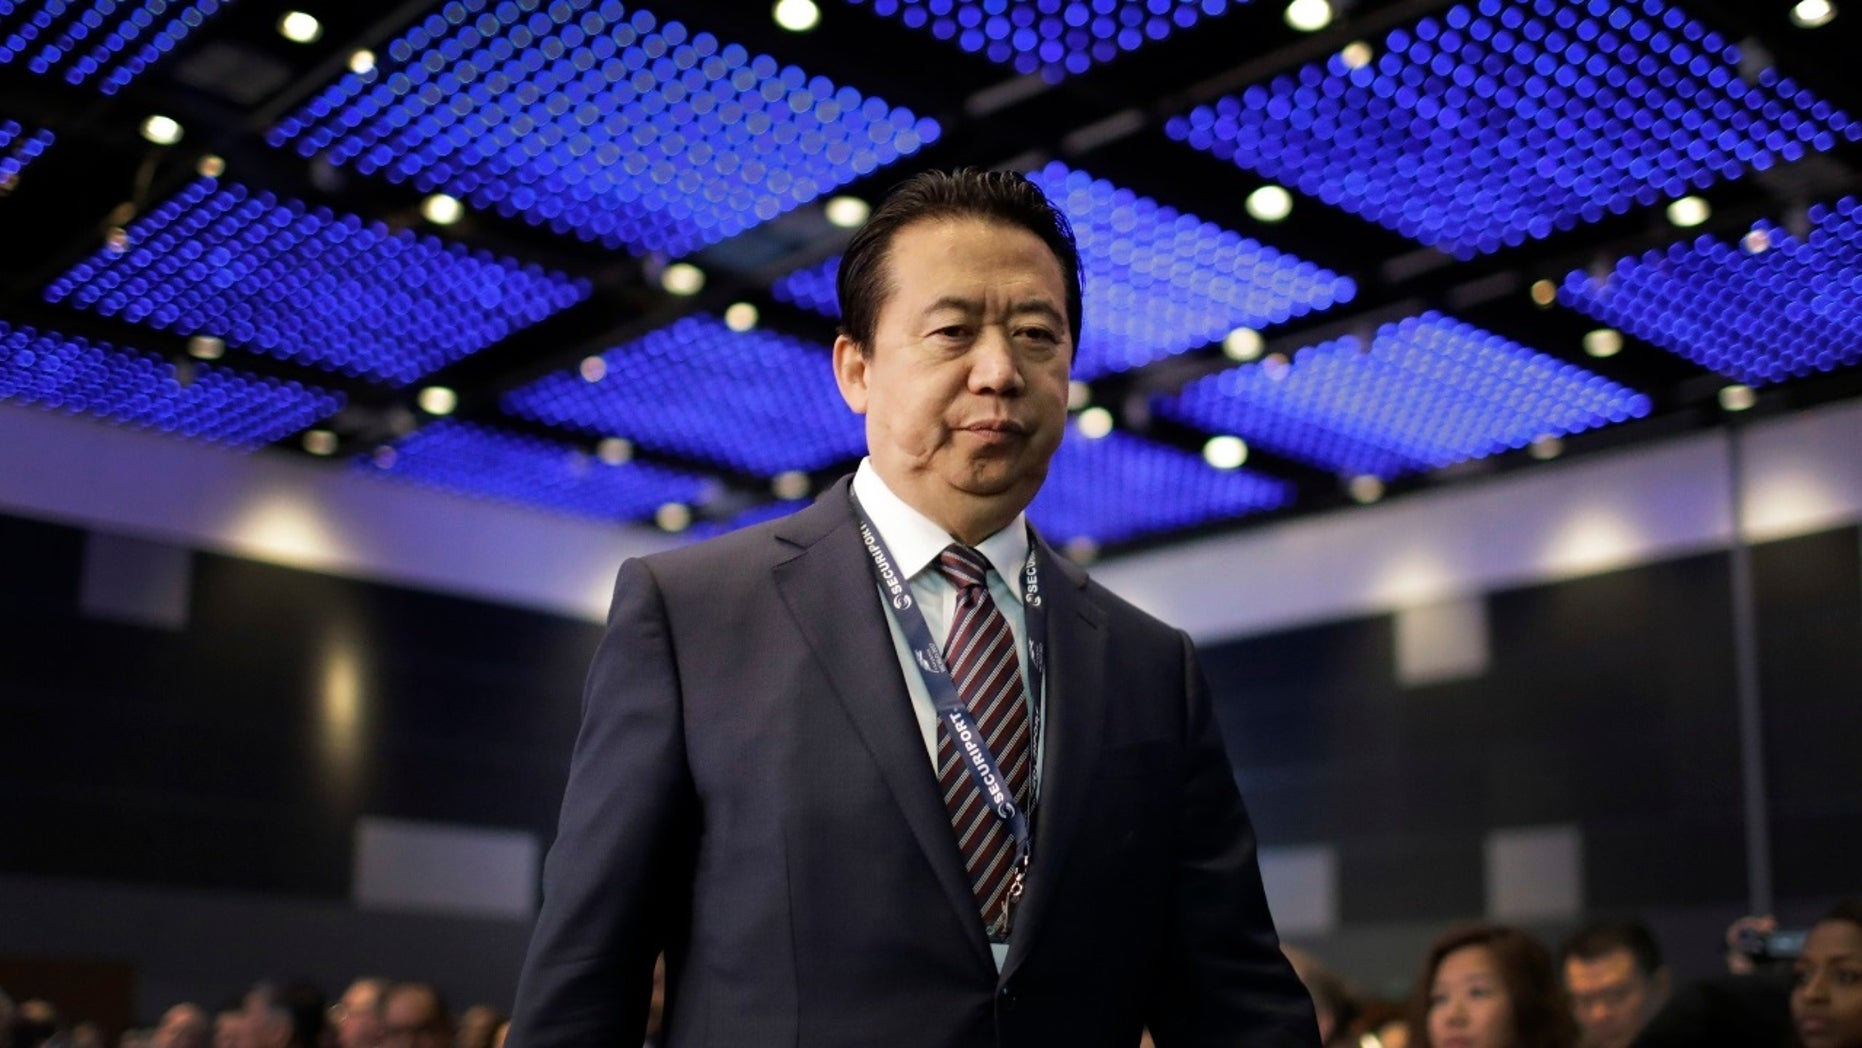 Meng Hongwei was reported missing after traveling to China.